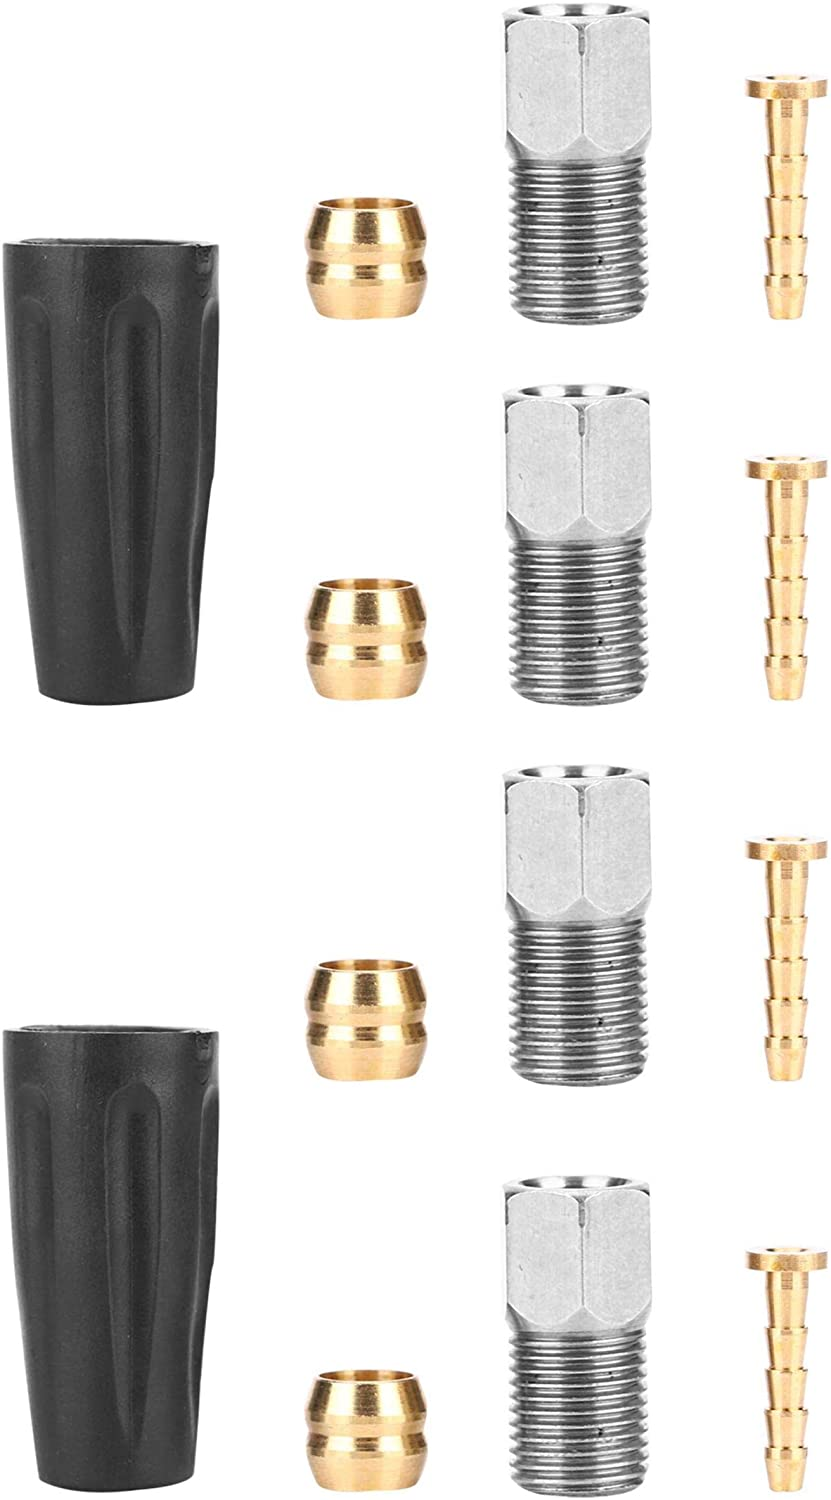 VGEBY Olive Connector Insert Set, Bike Hydraulic Cable Hose Set Bicycle Replacement Part with Oil Needles, Olive Head, Screws, Dust Covers